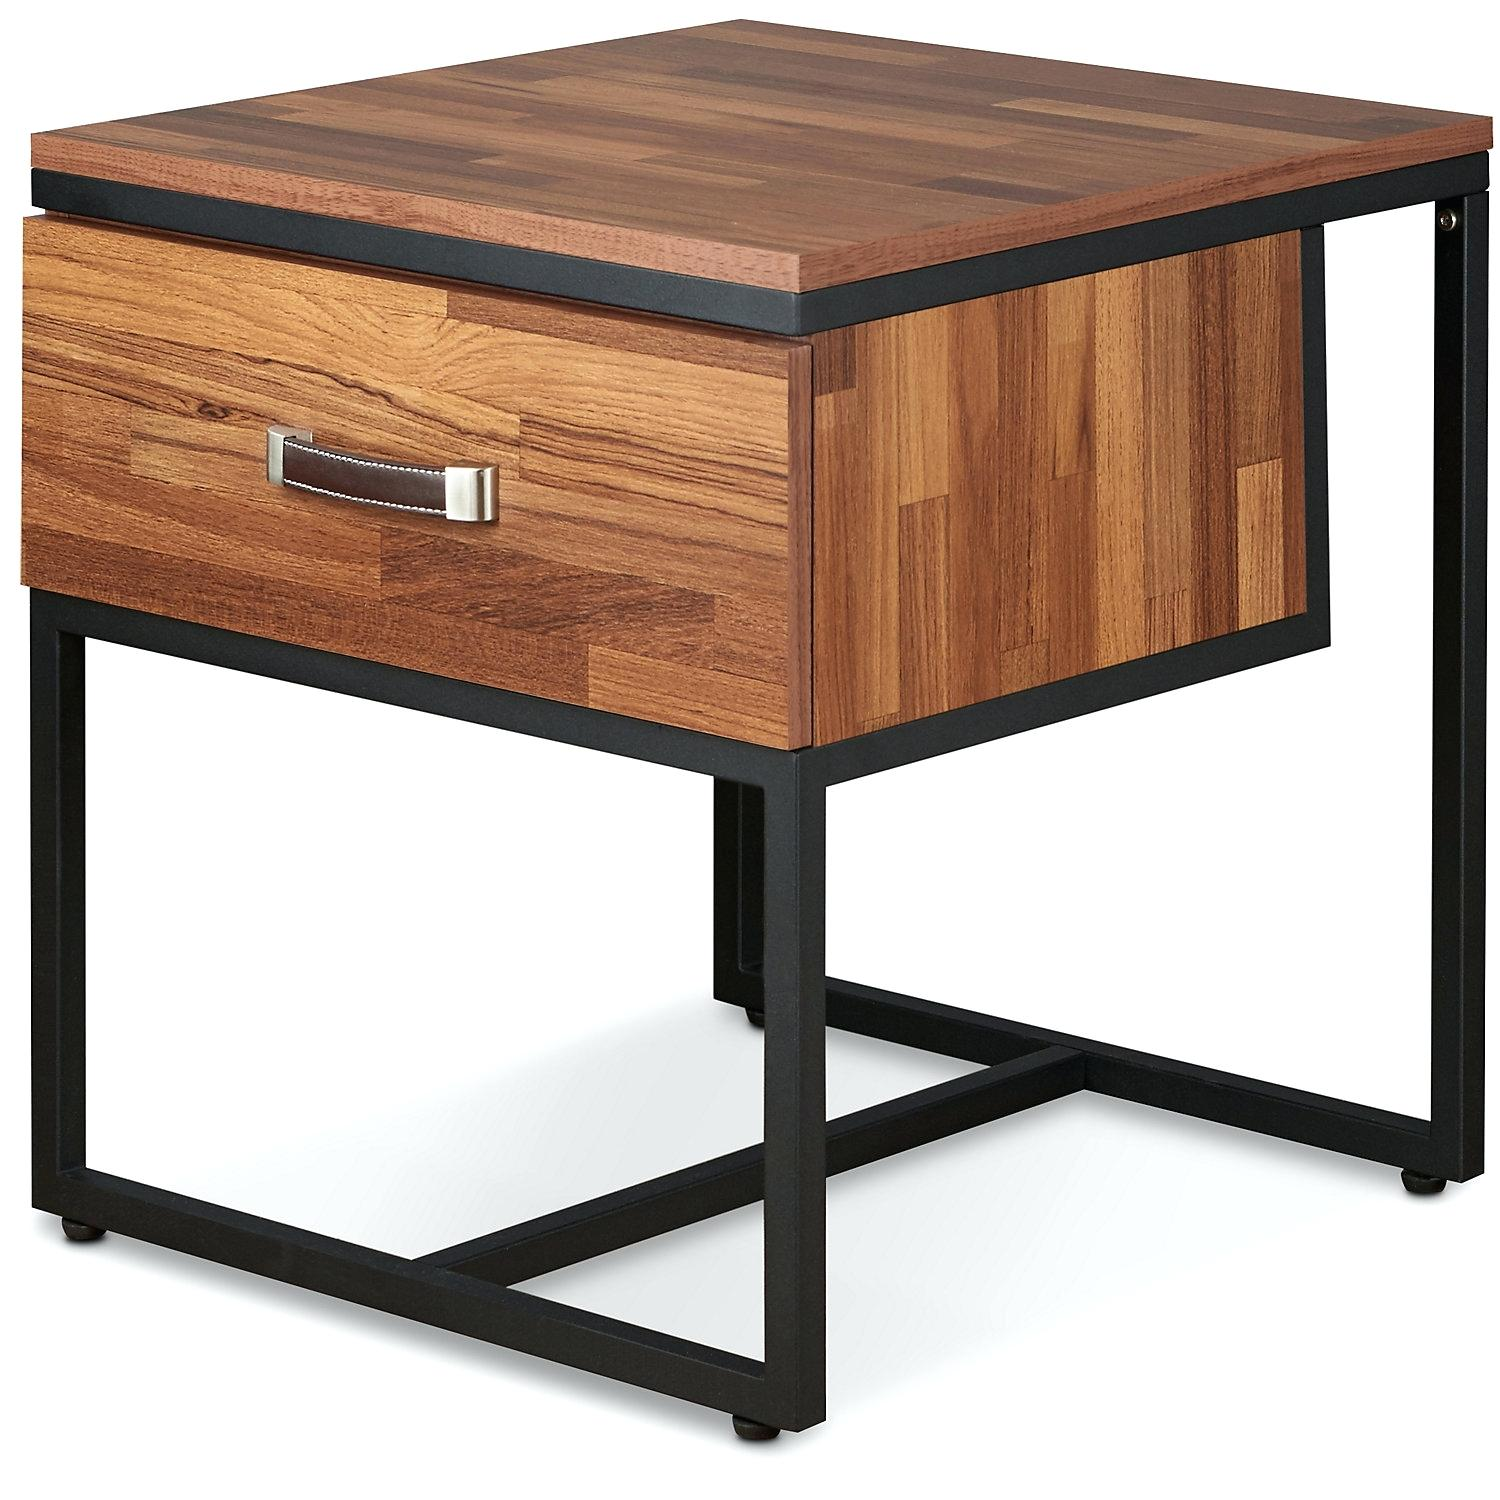 walnut accent table square end wood storage and occasional furniture one drawer project living room sets bathroom outdoor corner elastic covers big cloth coffee with modern tables